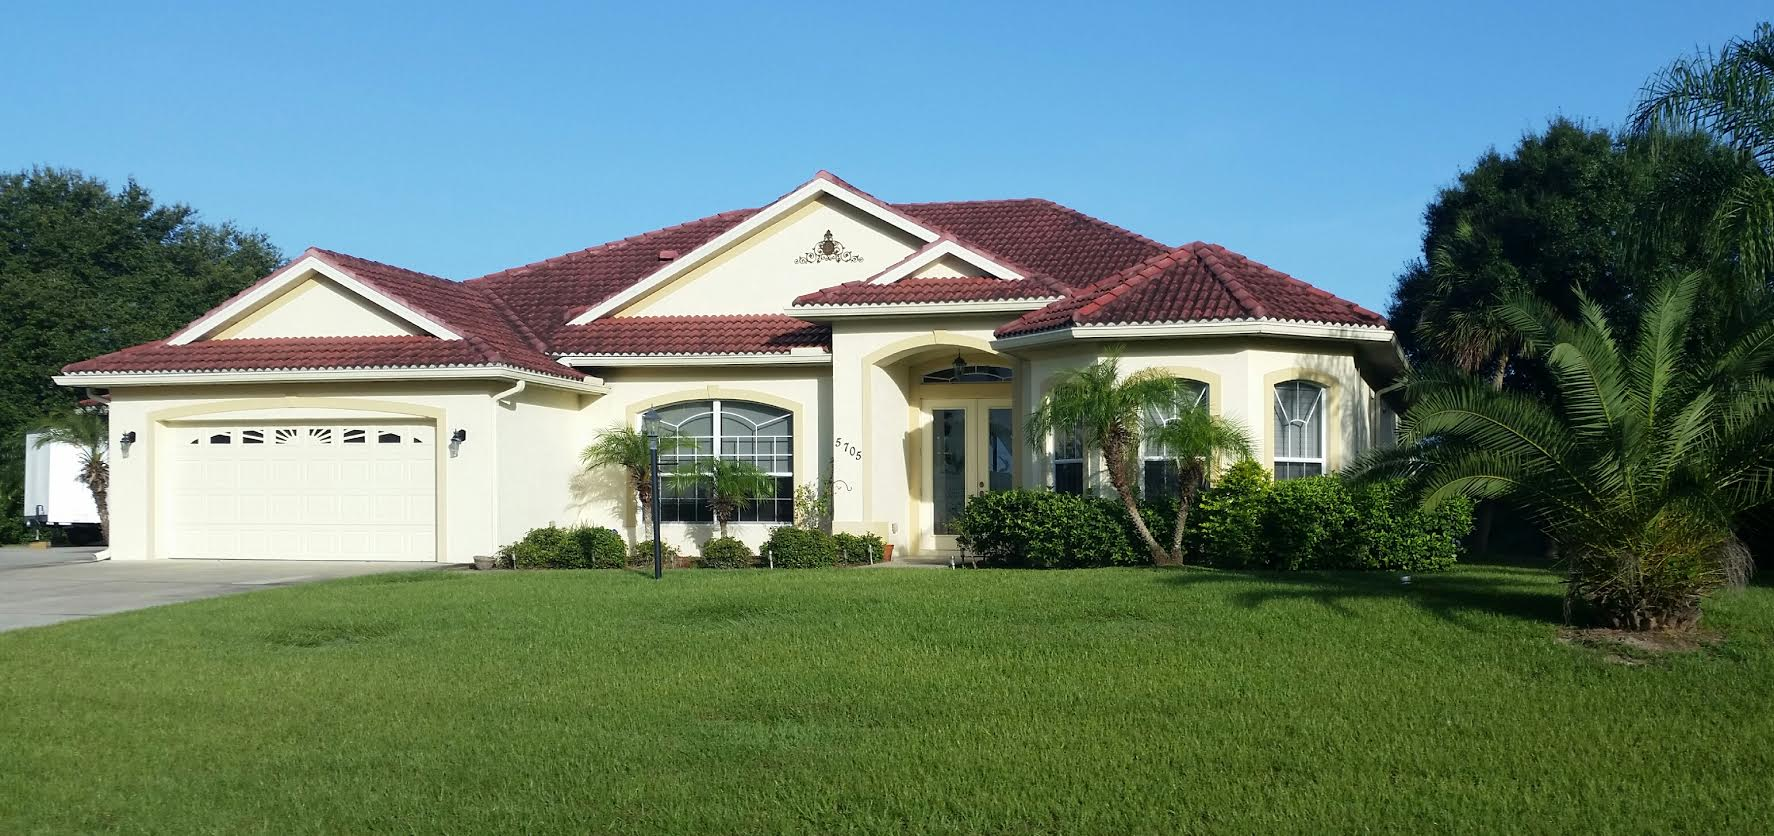 Southwest florida s real estate boom newyork big sun realty for Big houses in florida